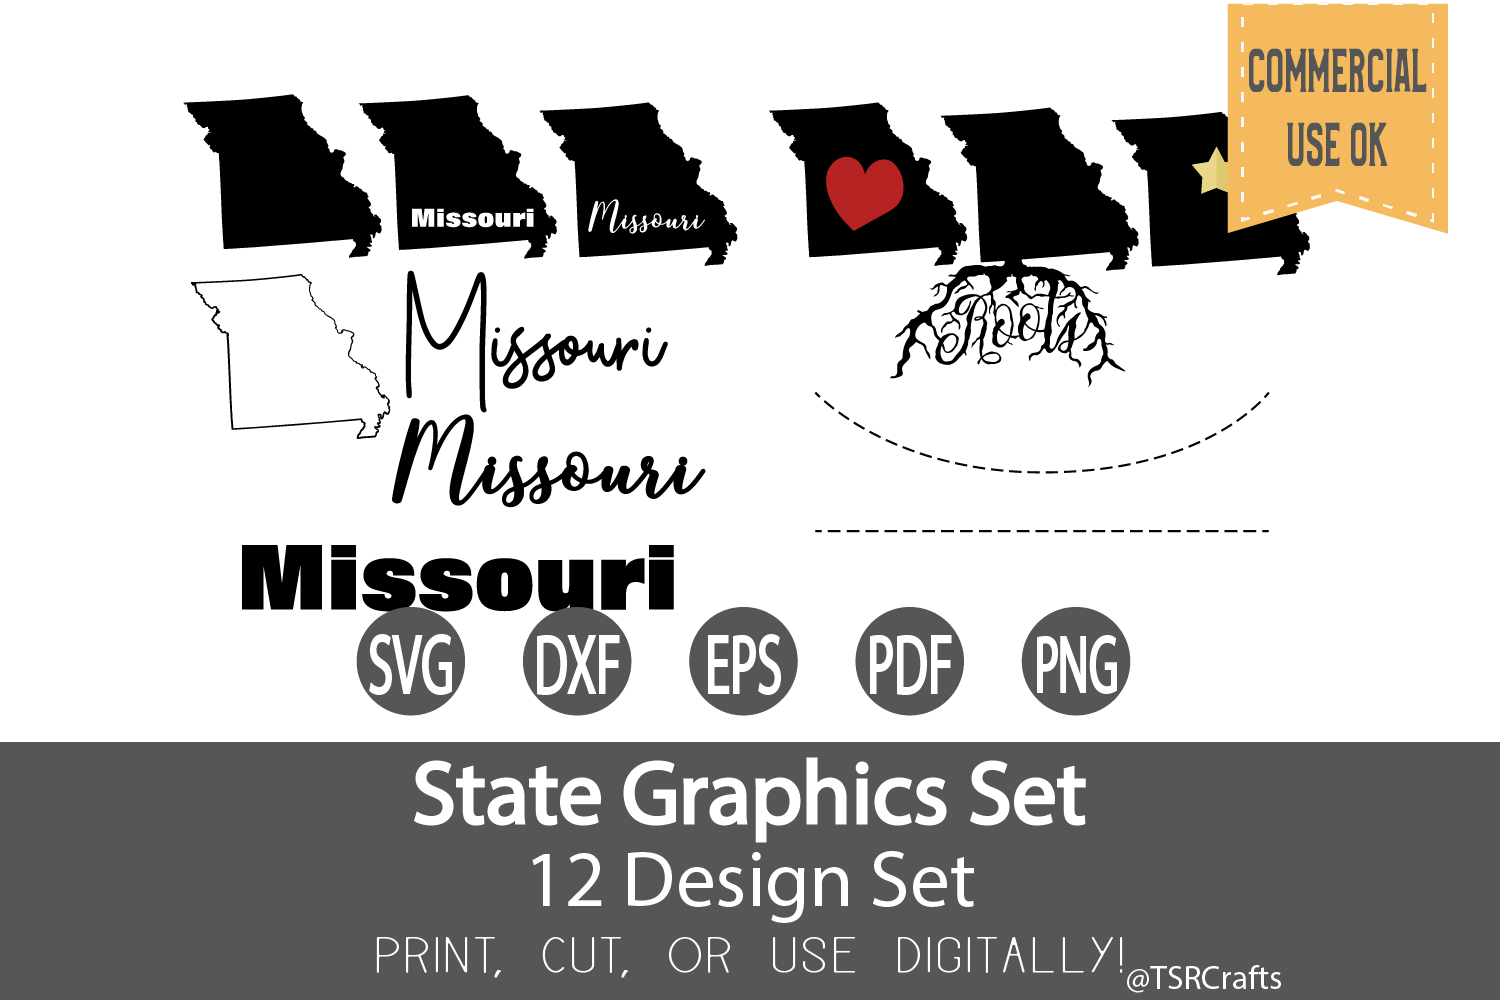 Missouri State Graphics Set - Clip Art and Digital Cut example image 1